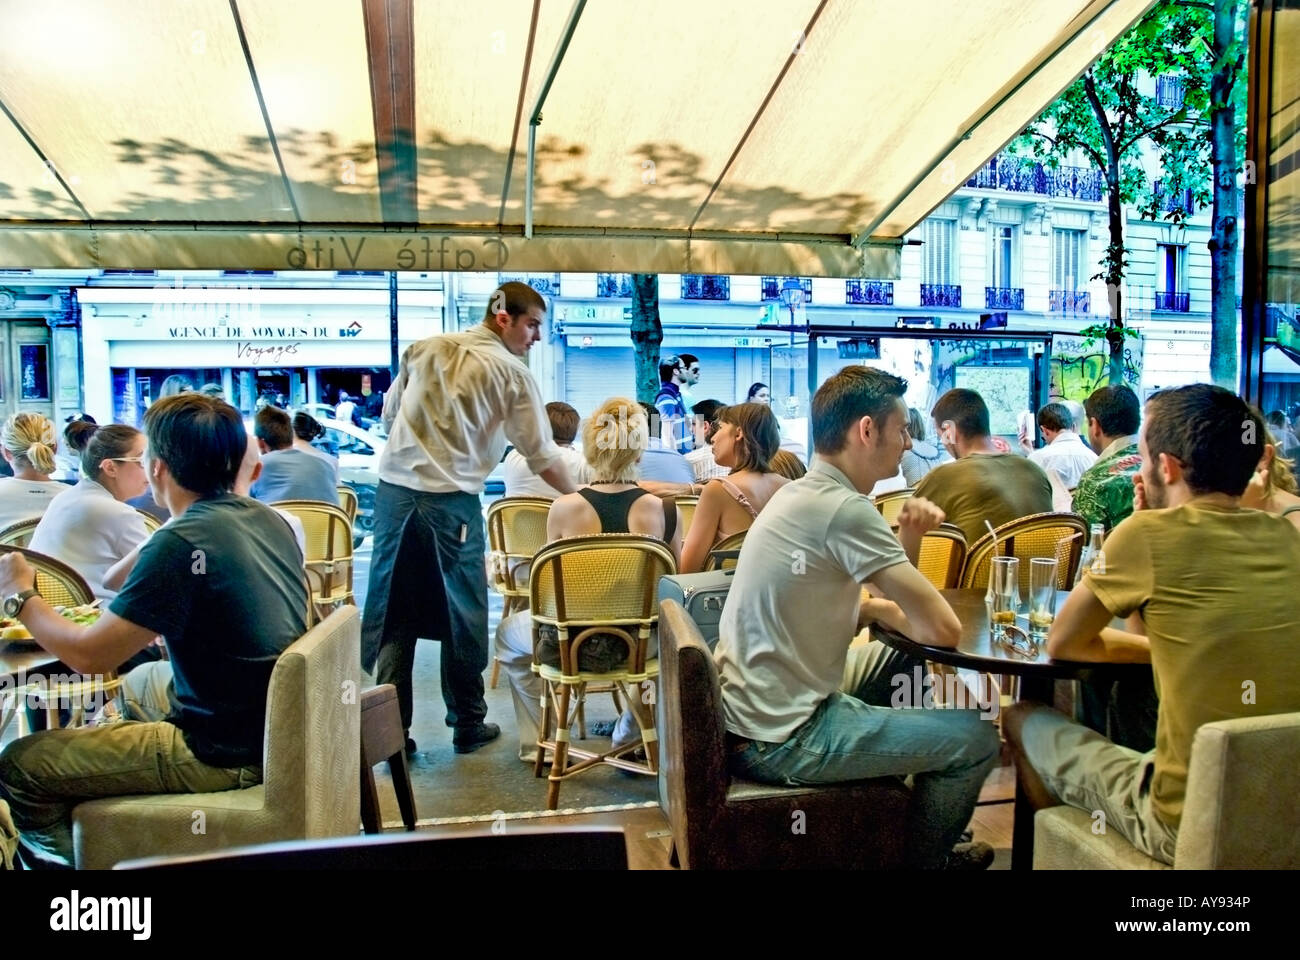 Paris France, Crowd of People, Terrace, French Cafe, Bistro Restaurant Sidewalk terrace Tables, in the Le Marais - Stock Image